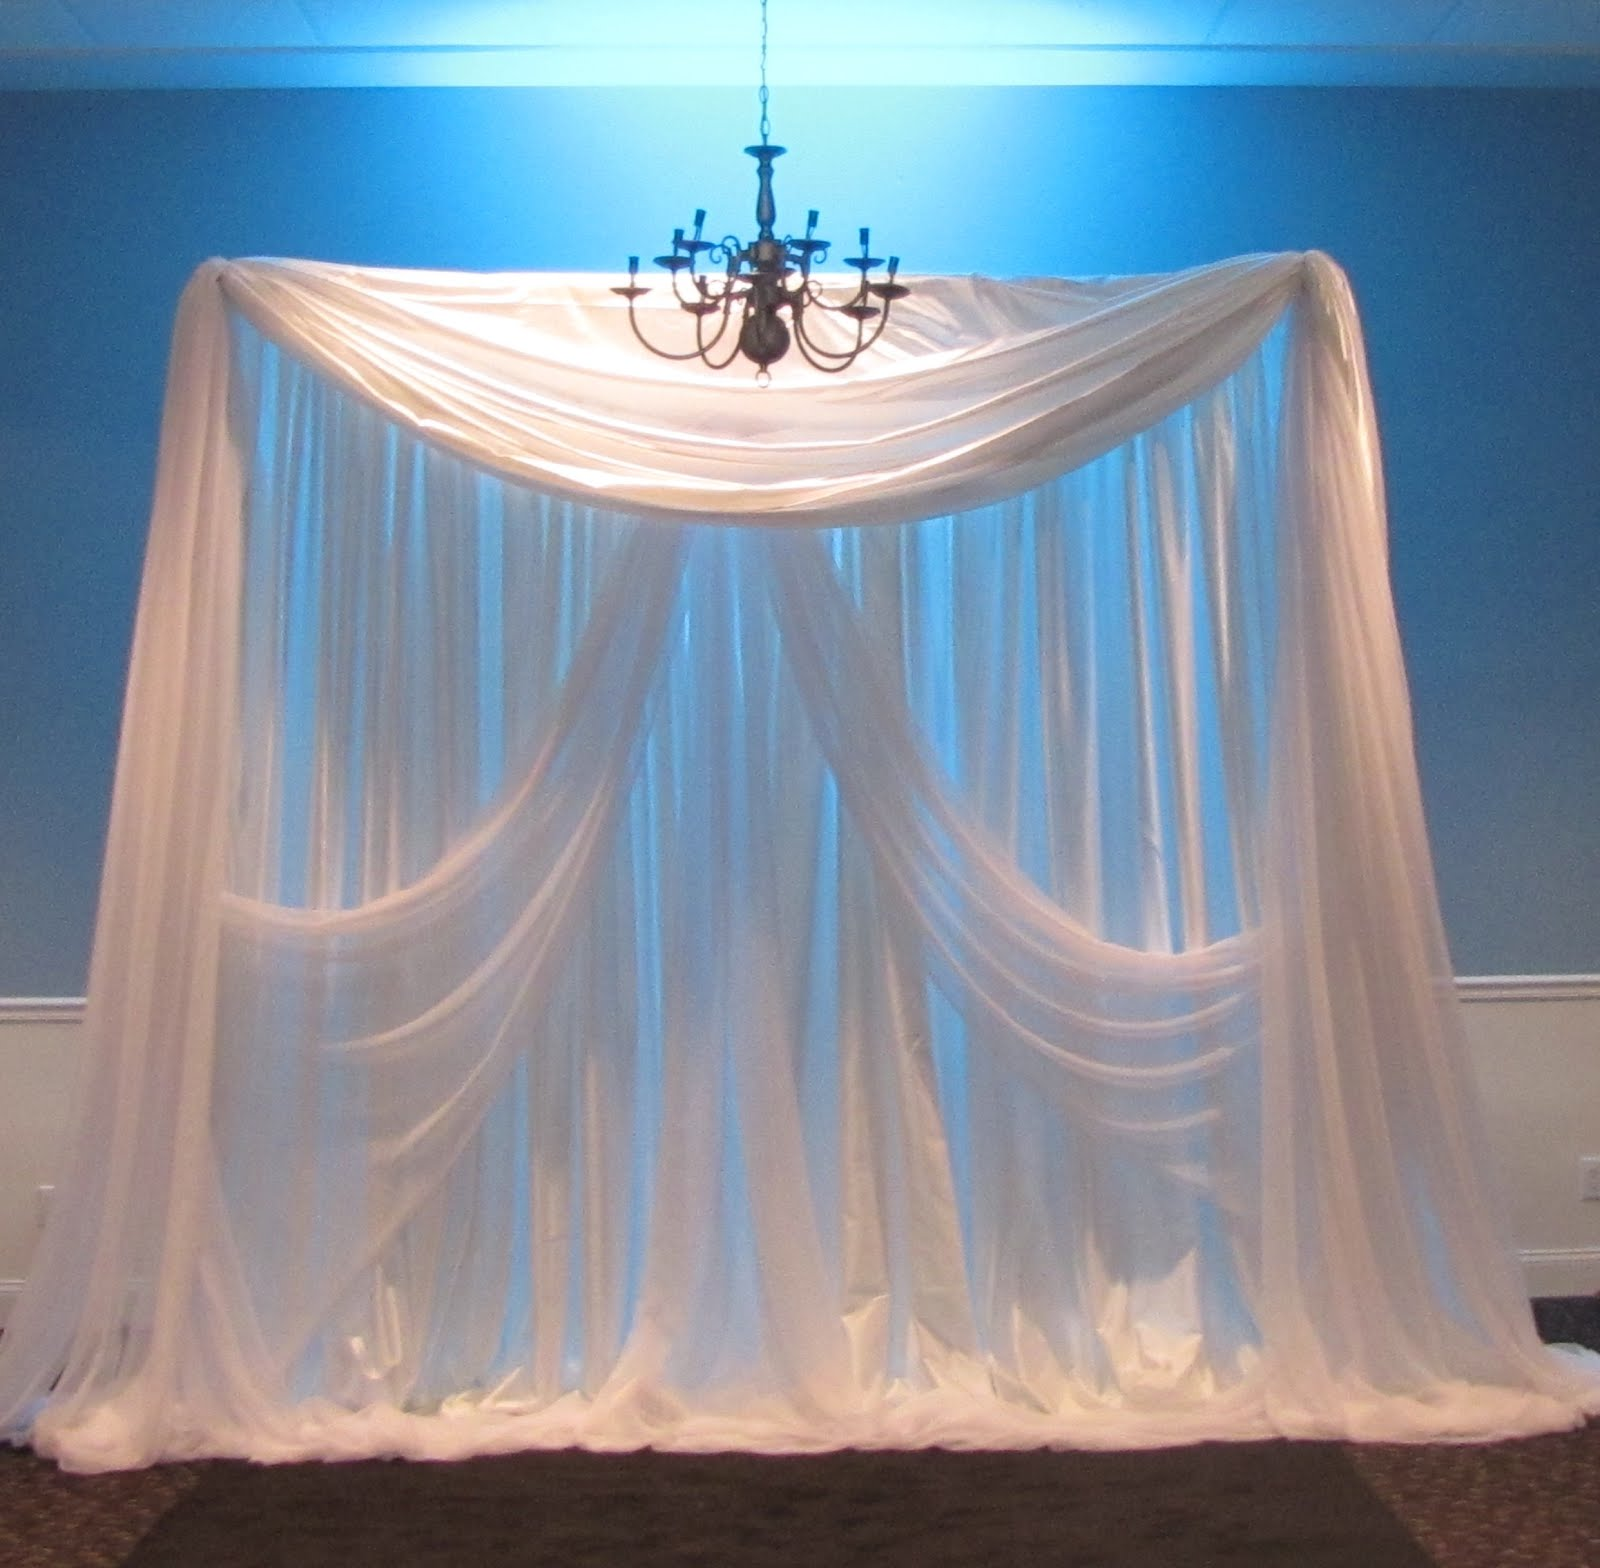 Party people event decorating company september 2012 for Backdrops wedding decoration